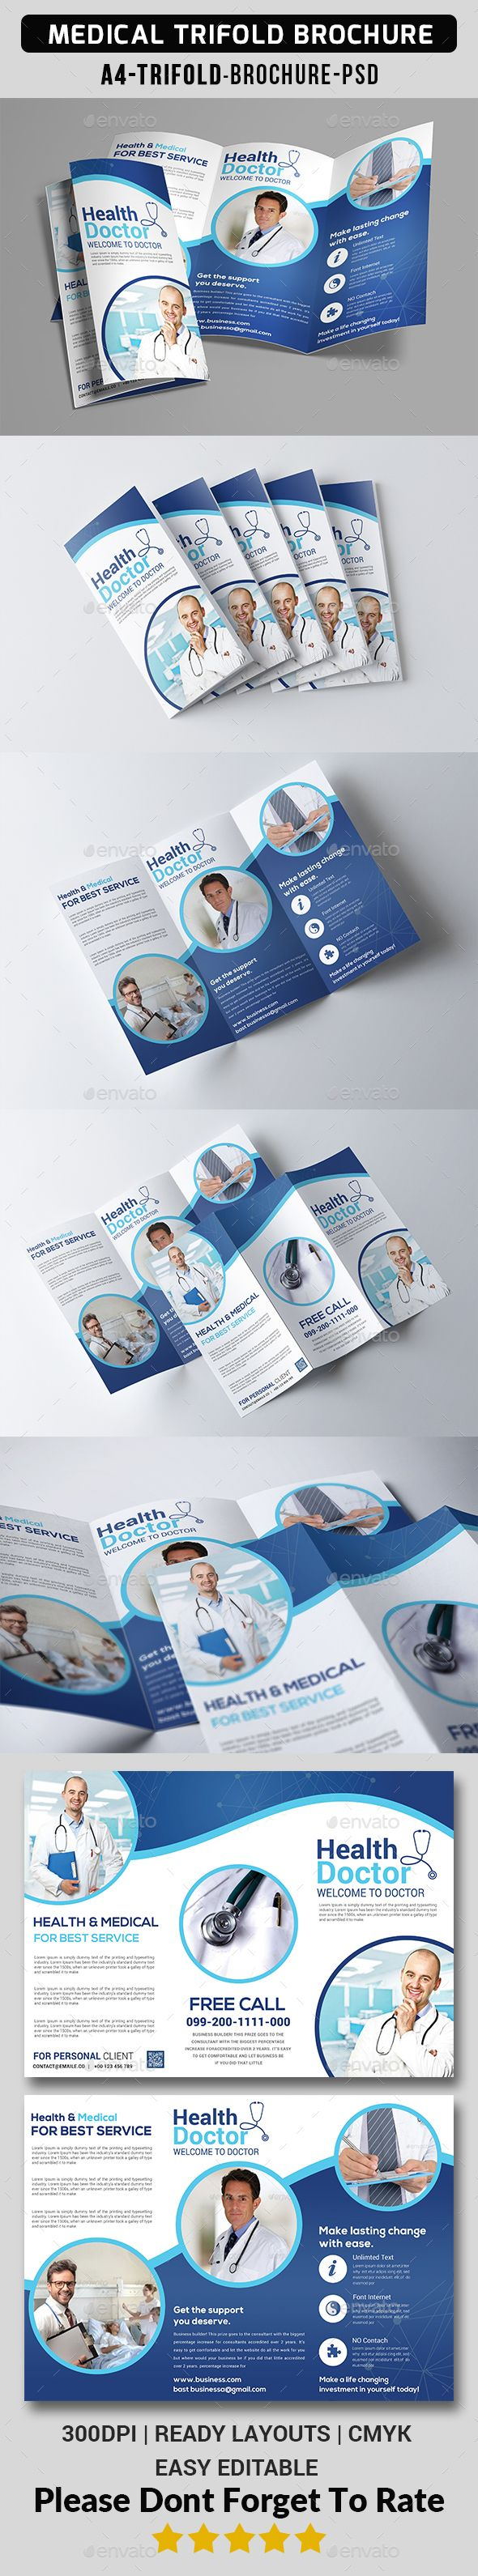 Medical Trifold Brochure - Informational Brochures Download here : graphicriver....